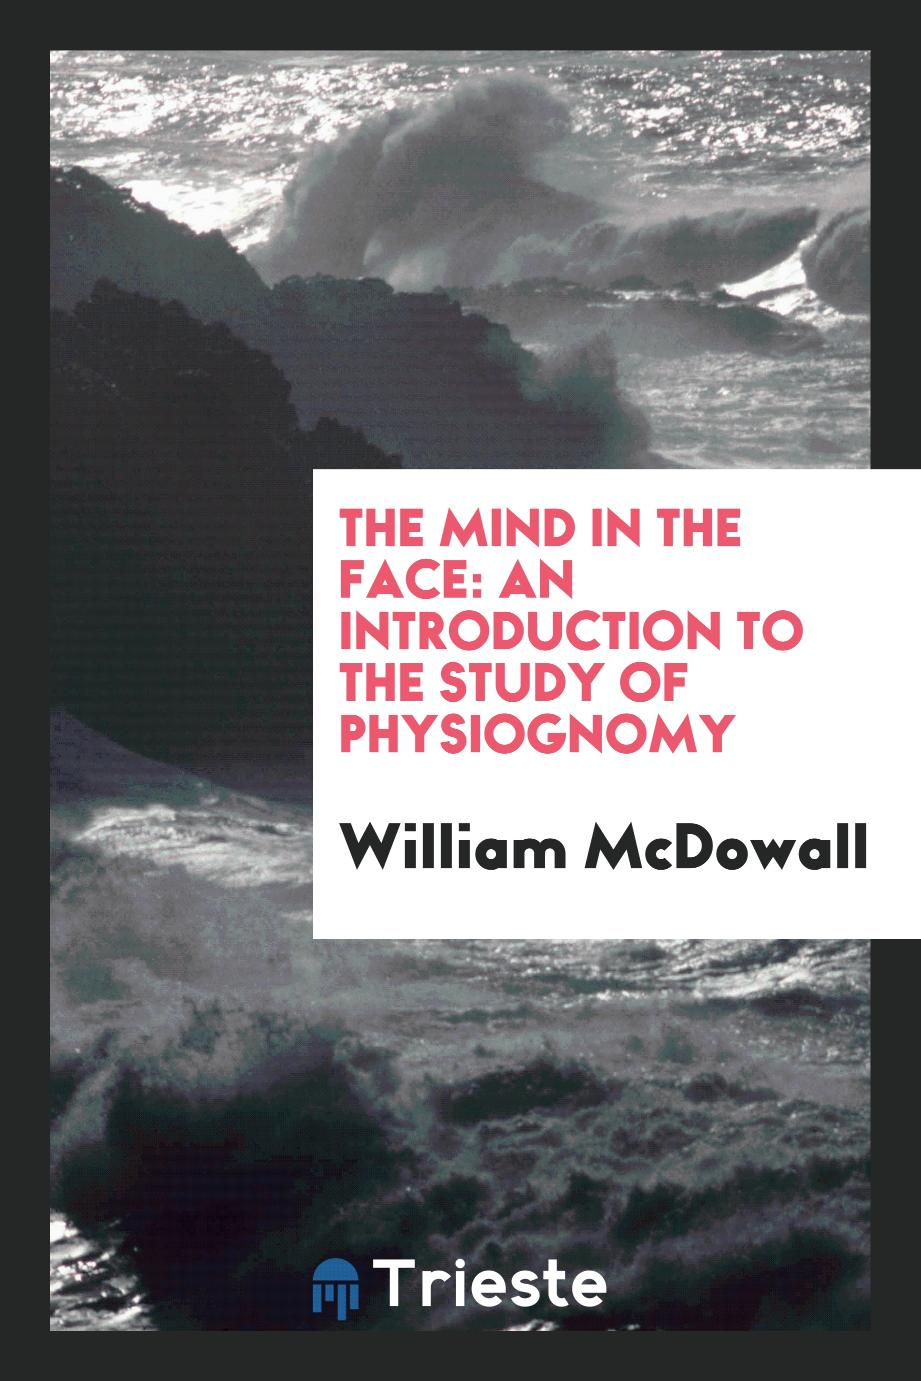 The Mind in the Face: An Introduction to the Study of Physiognomy